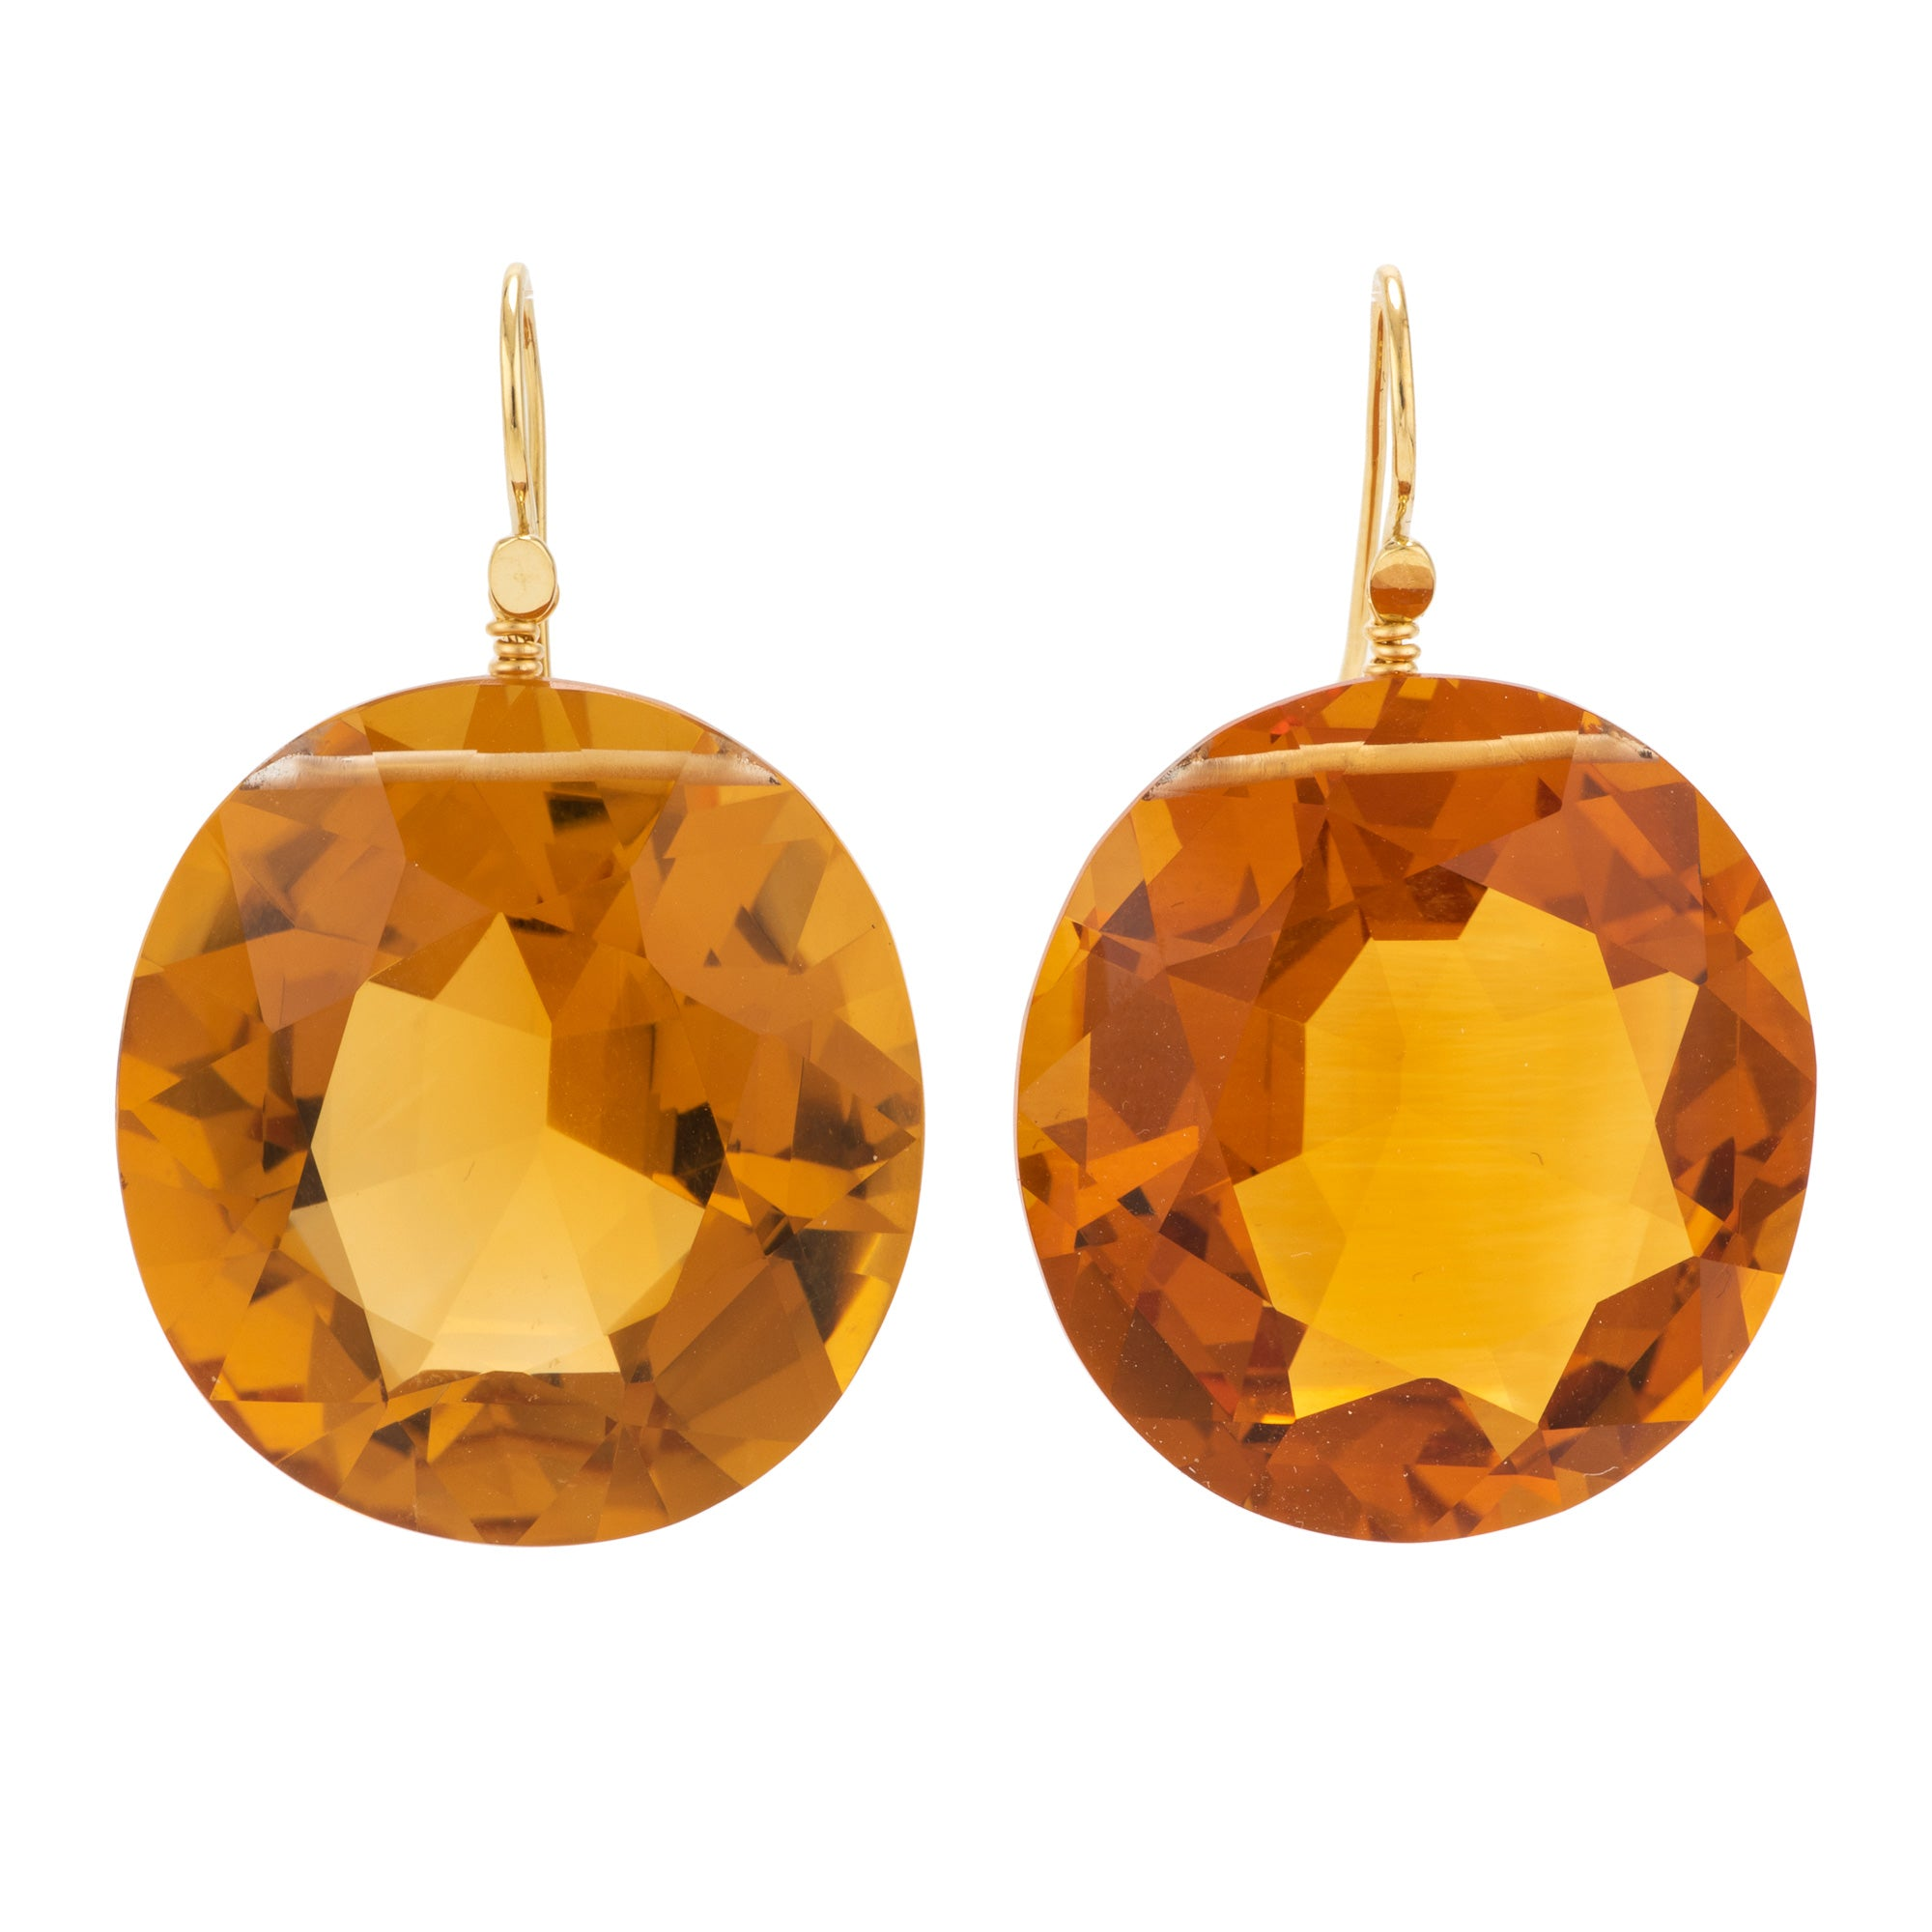 OVAL I citrine earrings